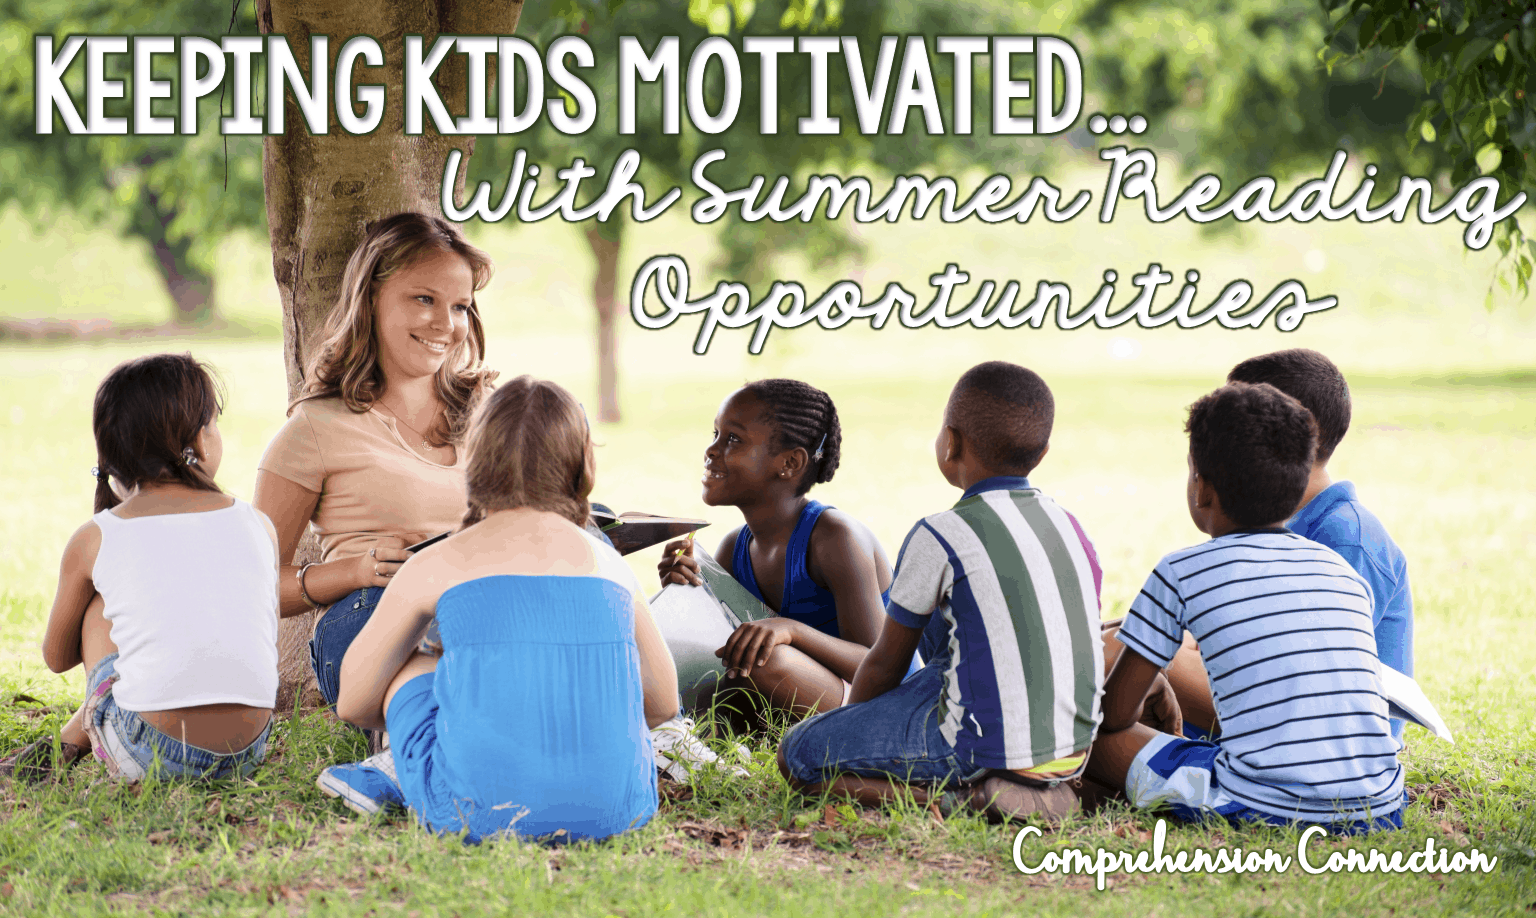 Summer is just around the corner, and like many teachers, you may be thinking about ways to keep your students' skills up during those months while they are away from school. Or maybe you're a mom or dad who needs ideas to keep your little one busy. Never fear! I have a few ideas you might try out to keep summer reading happening daily.